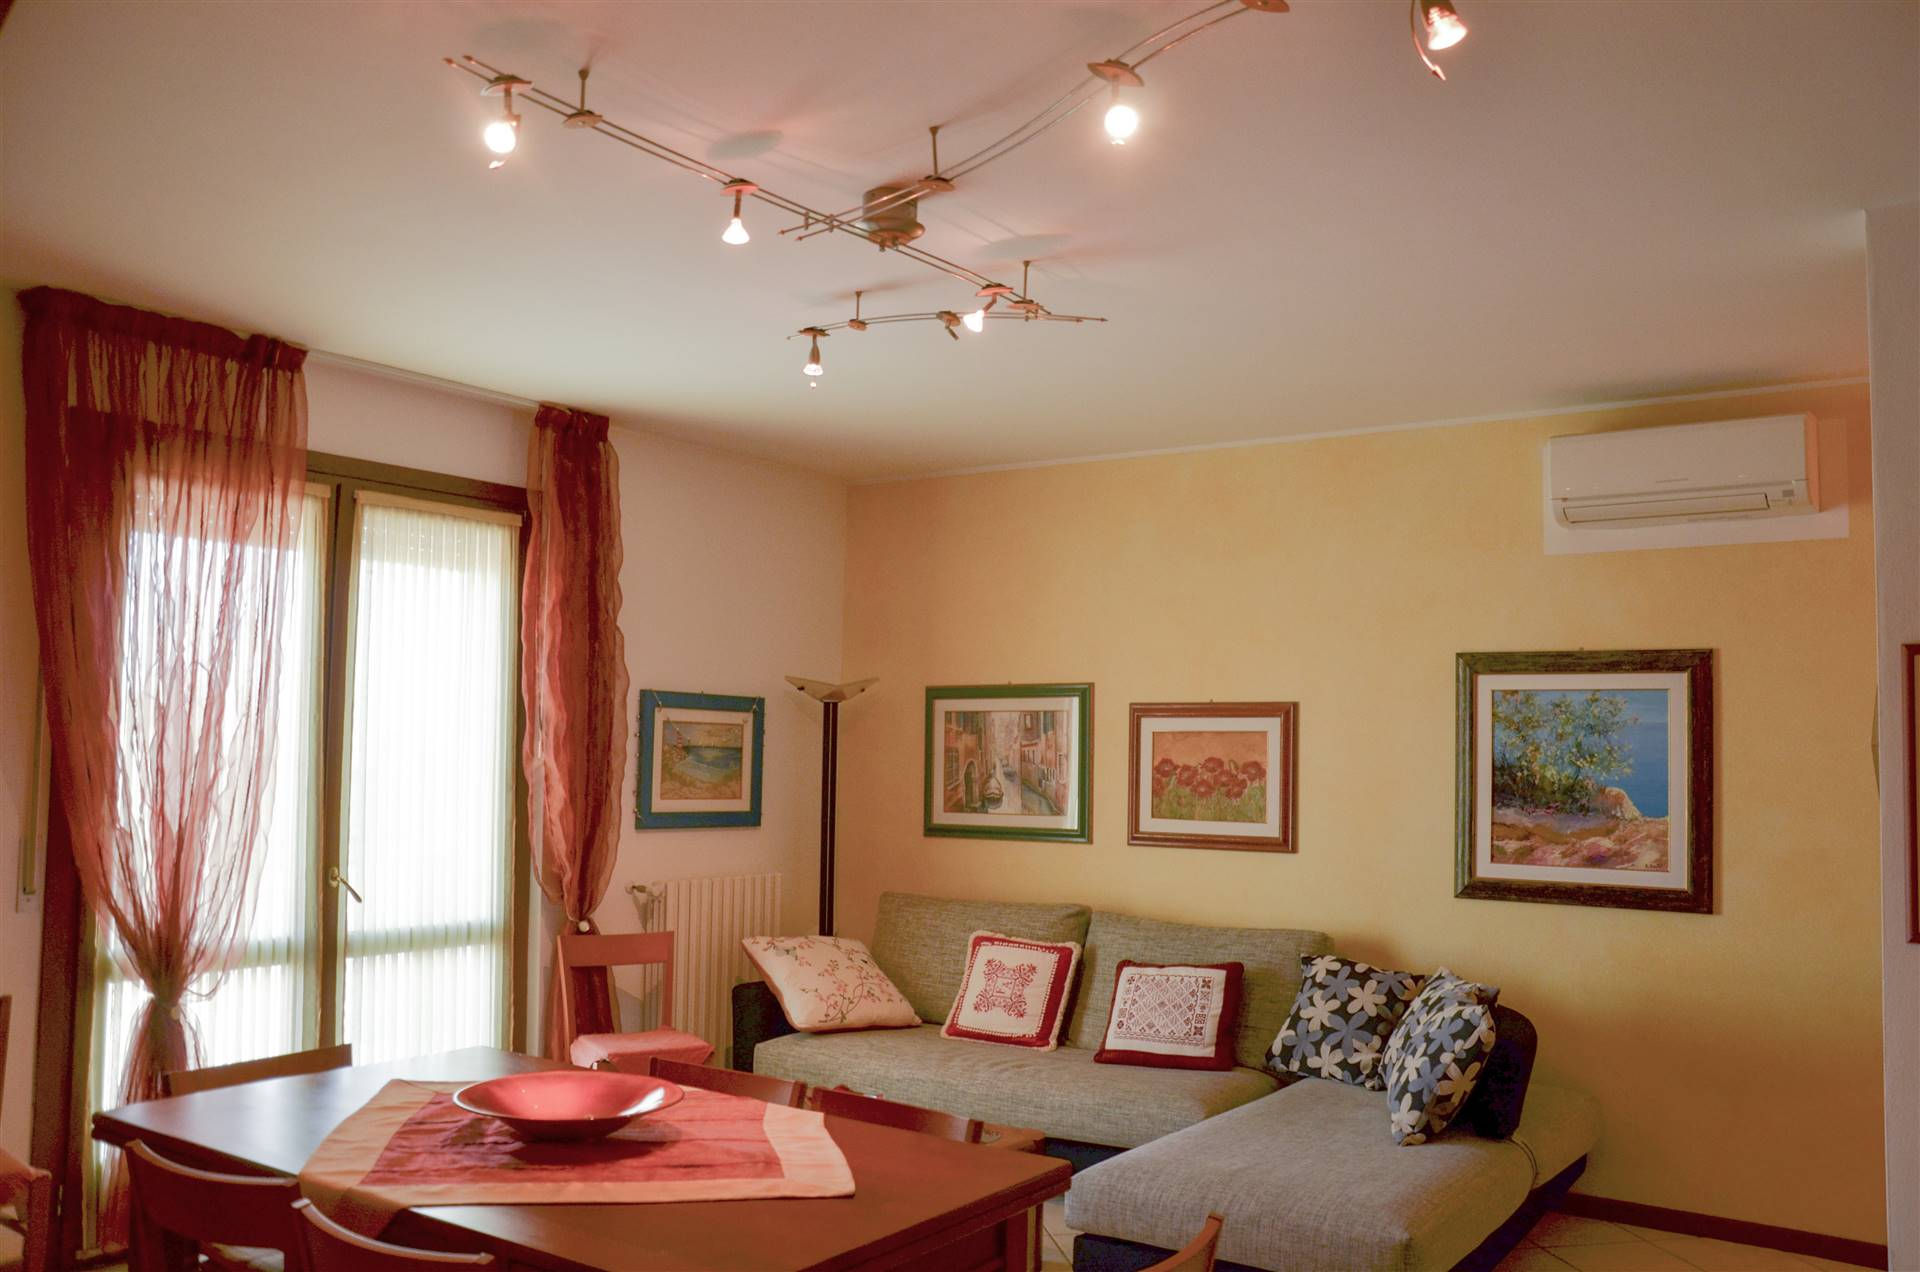 LIDO DI JESOLO, JESOLO, Apartment for sale of 80 Sq. mt., Excellent Condition, Heating Individual heating system, Energetic class: D, placed at 5° on